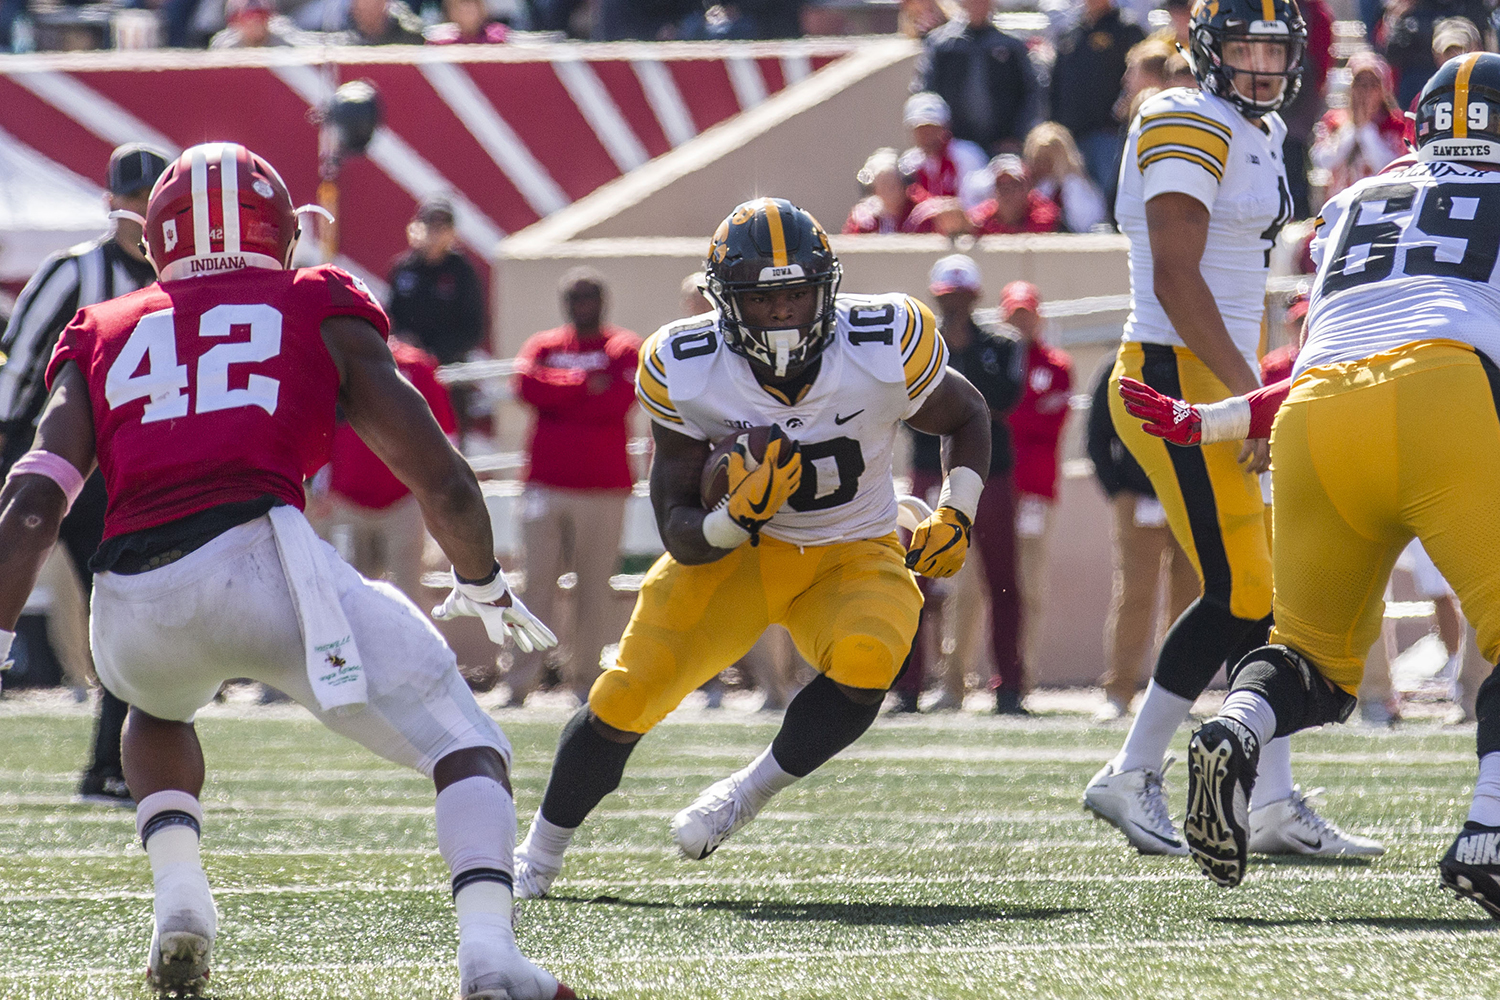 Iowa running back Mekhi Sargent carries the ball during Iowa's game at Indiana at Memorial Stadium in Bloomington on Saturday, Oct. 13, 2018. The Hawkeyes beat the Hoosiers 42-16.